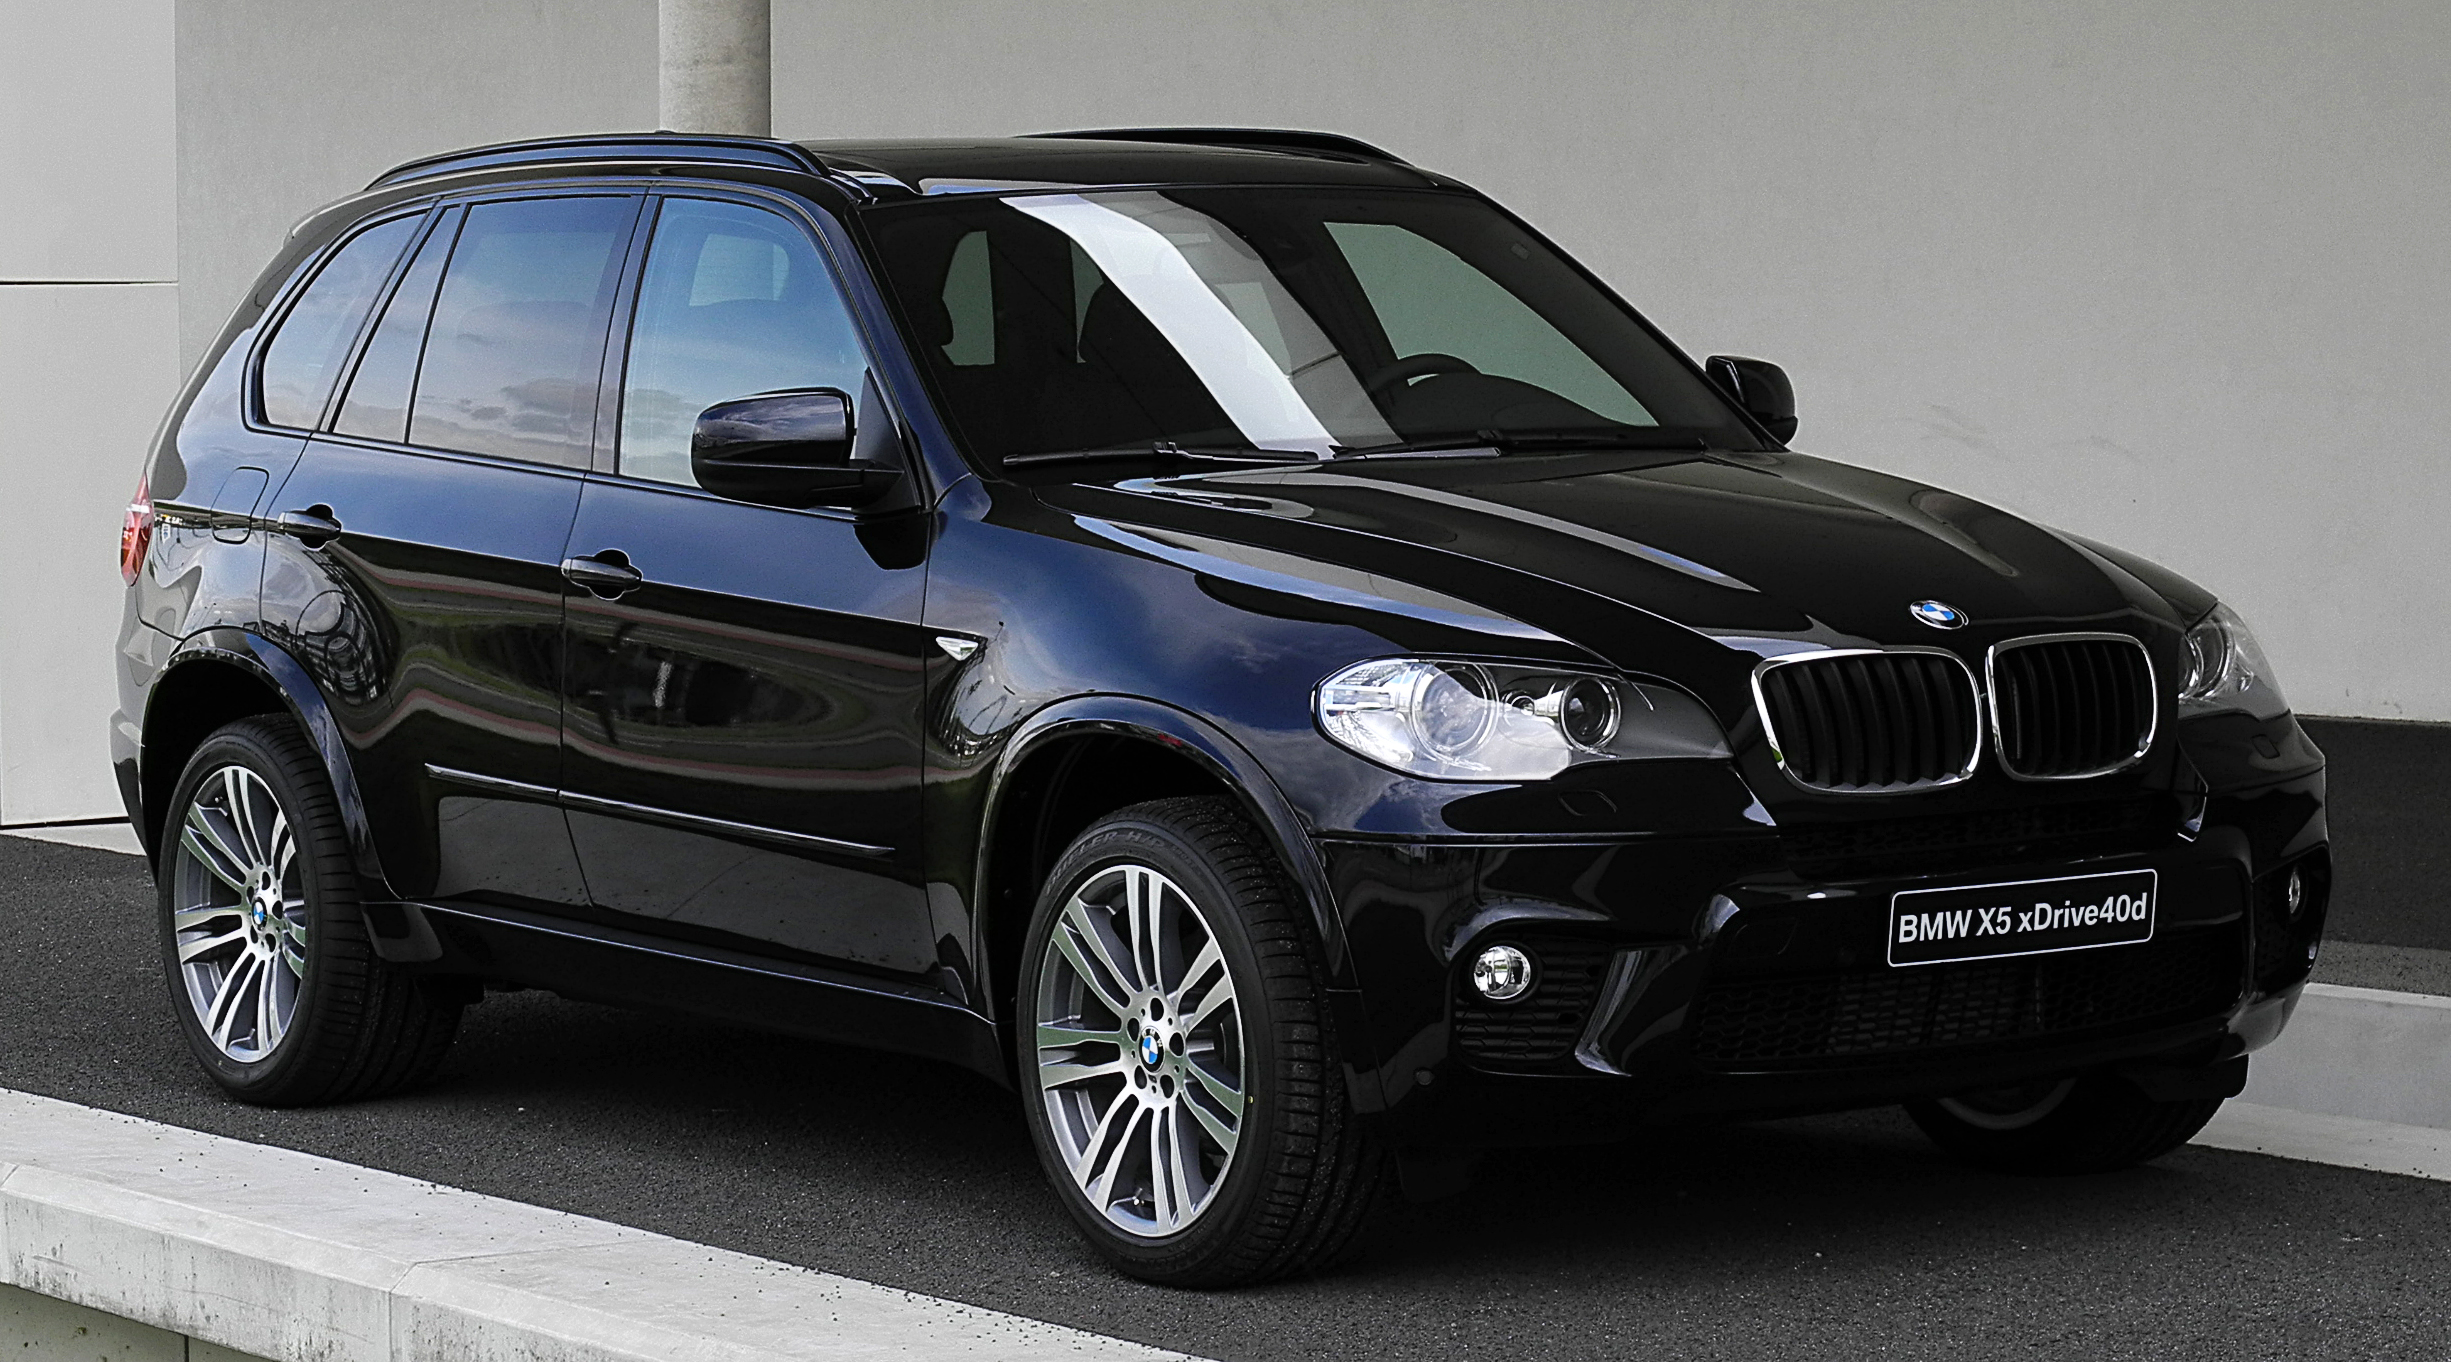 file bmw x5 xdrive40d m sportpaket e70 facelift frontansicht 2 juli 2011 d. Black Bedroom Furniture Sets. Home Design Ideas